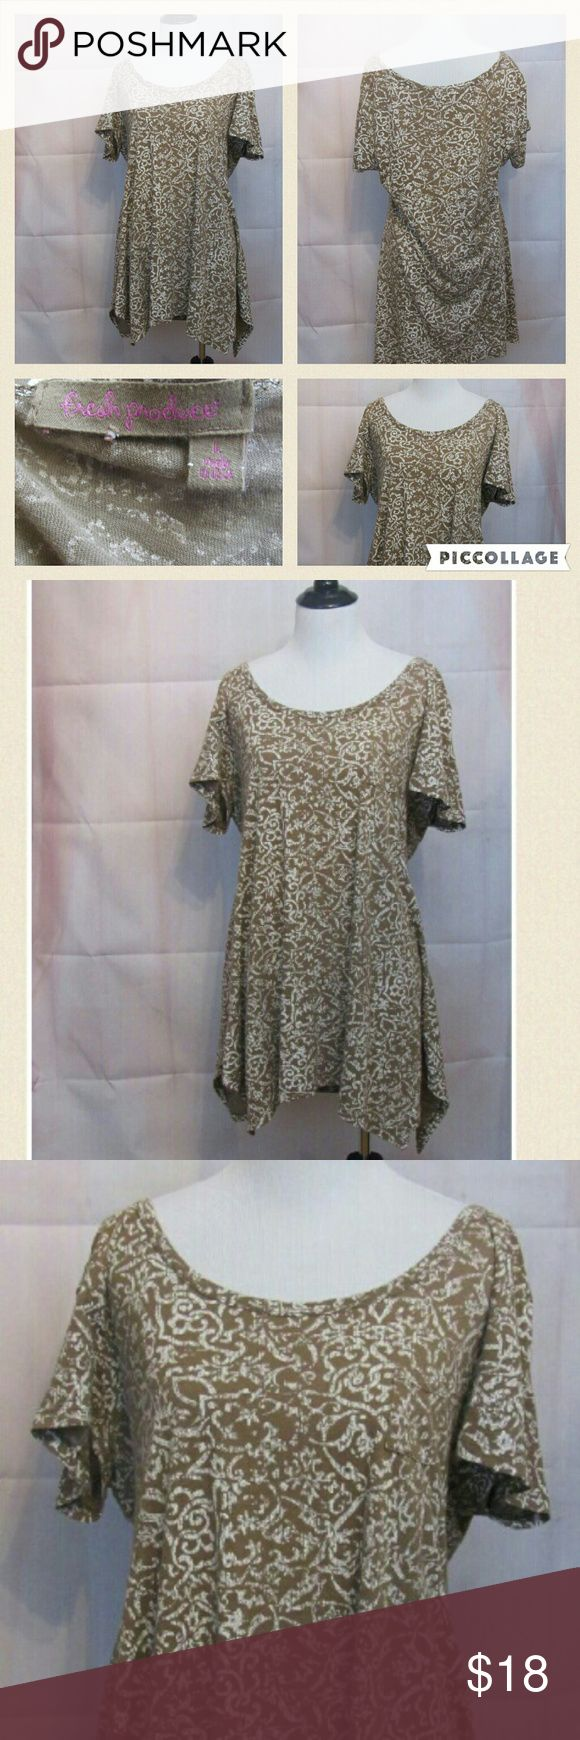 """Fresh Produce Tan Beige Short Sleeve Top L Great top. Scoop Neck. Short sleeve.   All clothes are in excellent used condition. No stains or holes.  Content: 100% cotton  Bust: 42"""" Length: 29""""  Posh11 Fresh Produce Tops Tees - Short Sleeve"""